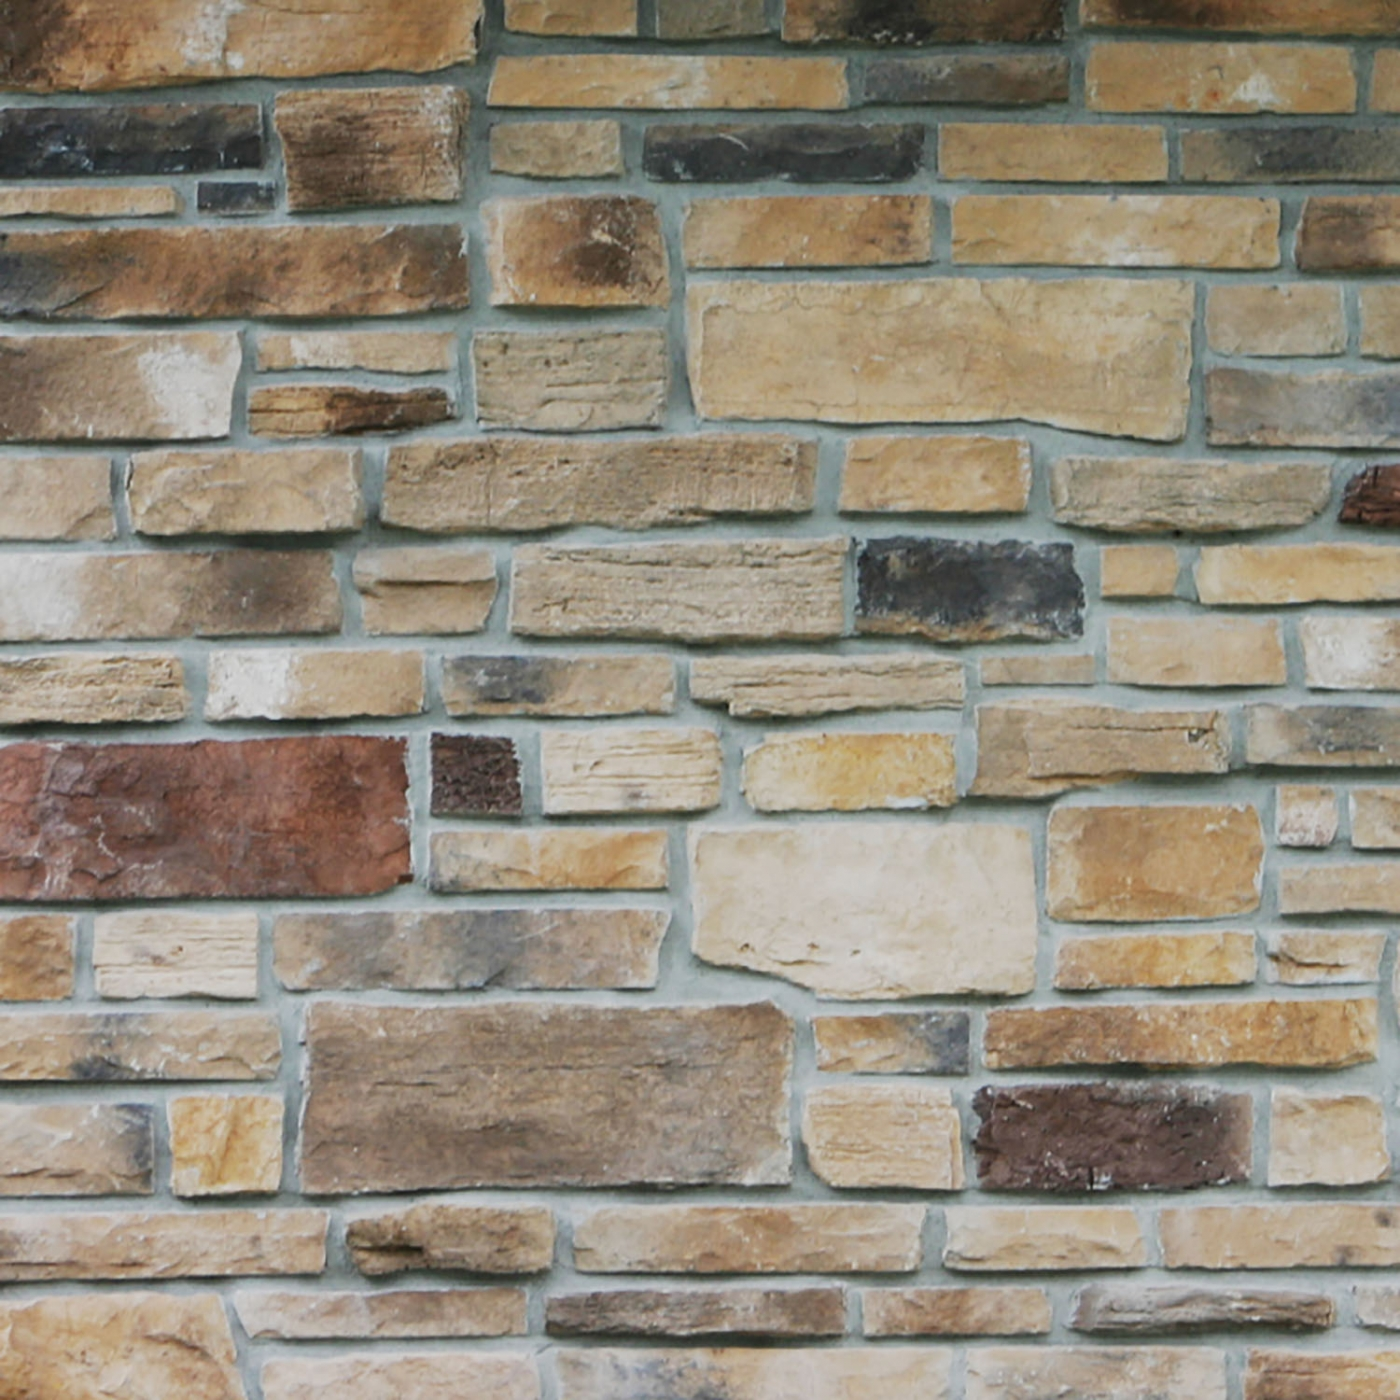 Northwoods Weather Edge Rubble Blend Stone Veneer from Environmental StoneWorks